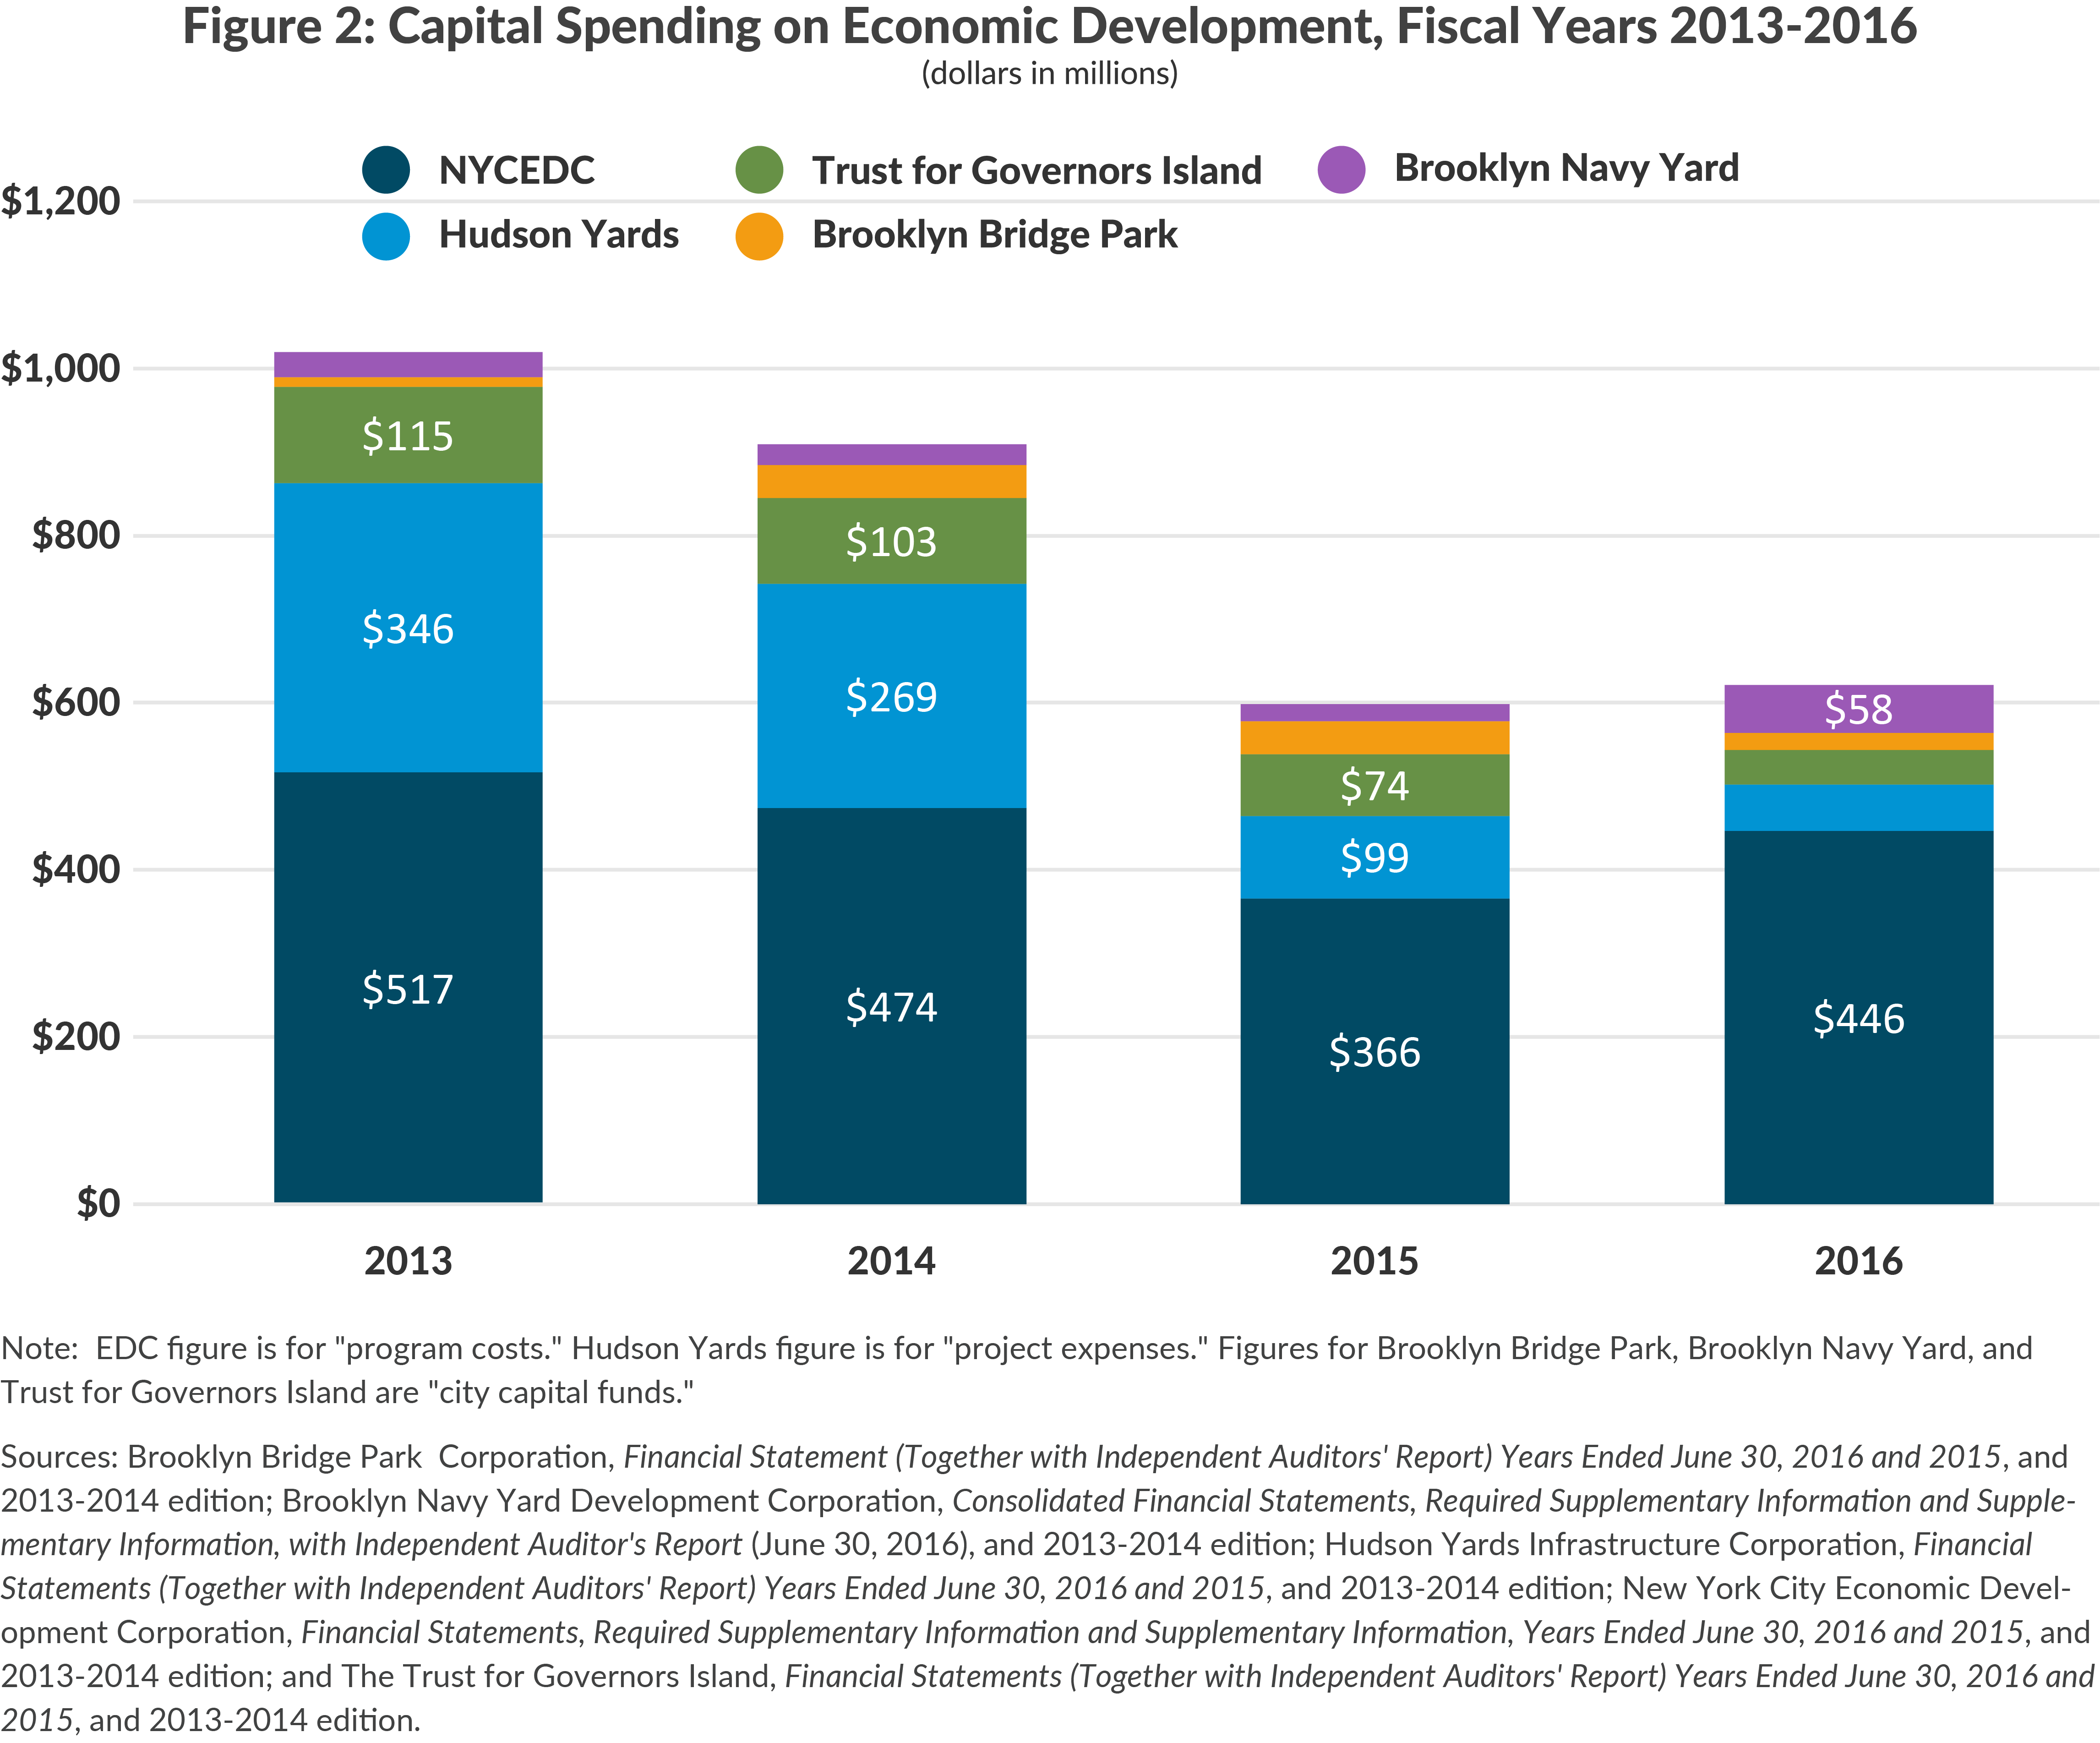 Capital Spending on Economic Development, Fiscal Years 2013-2016